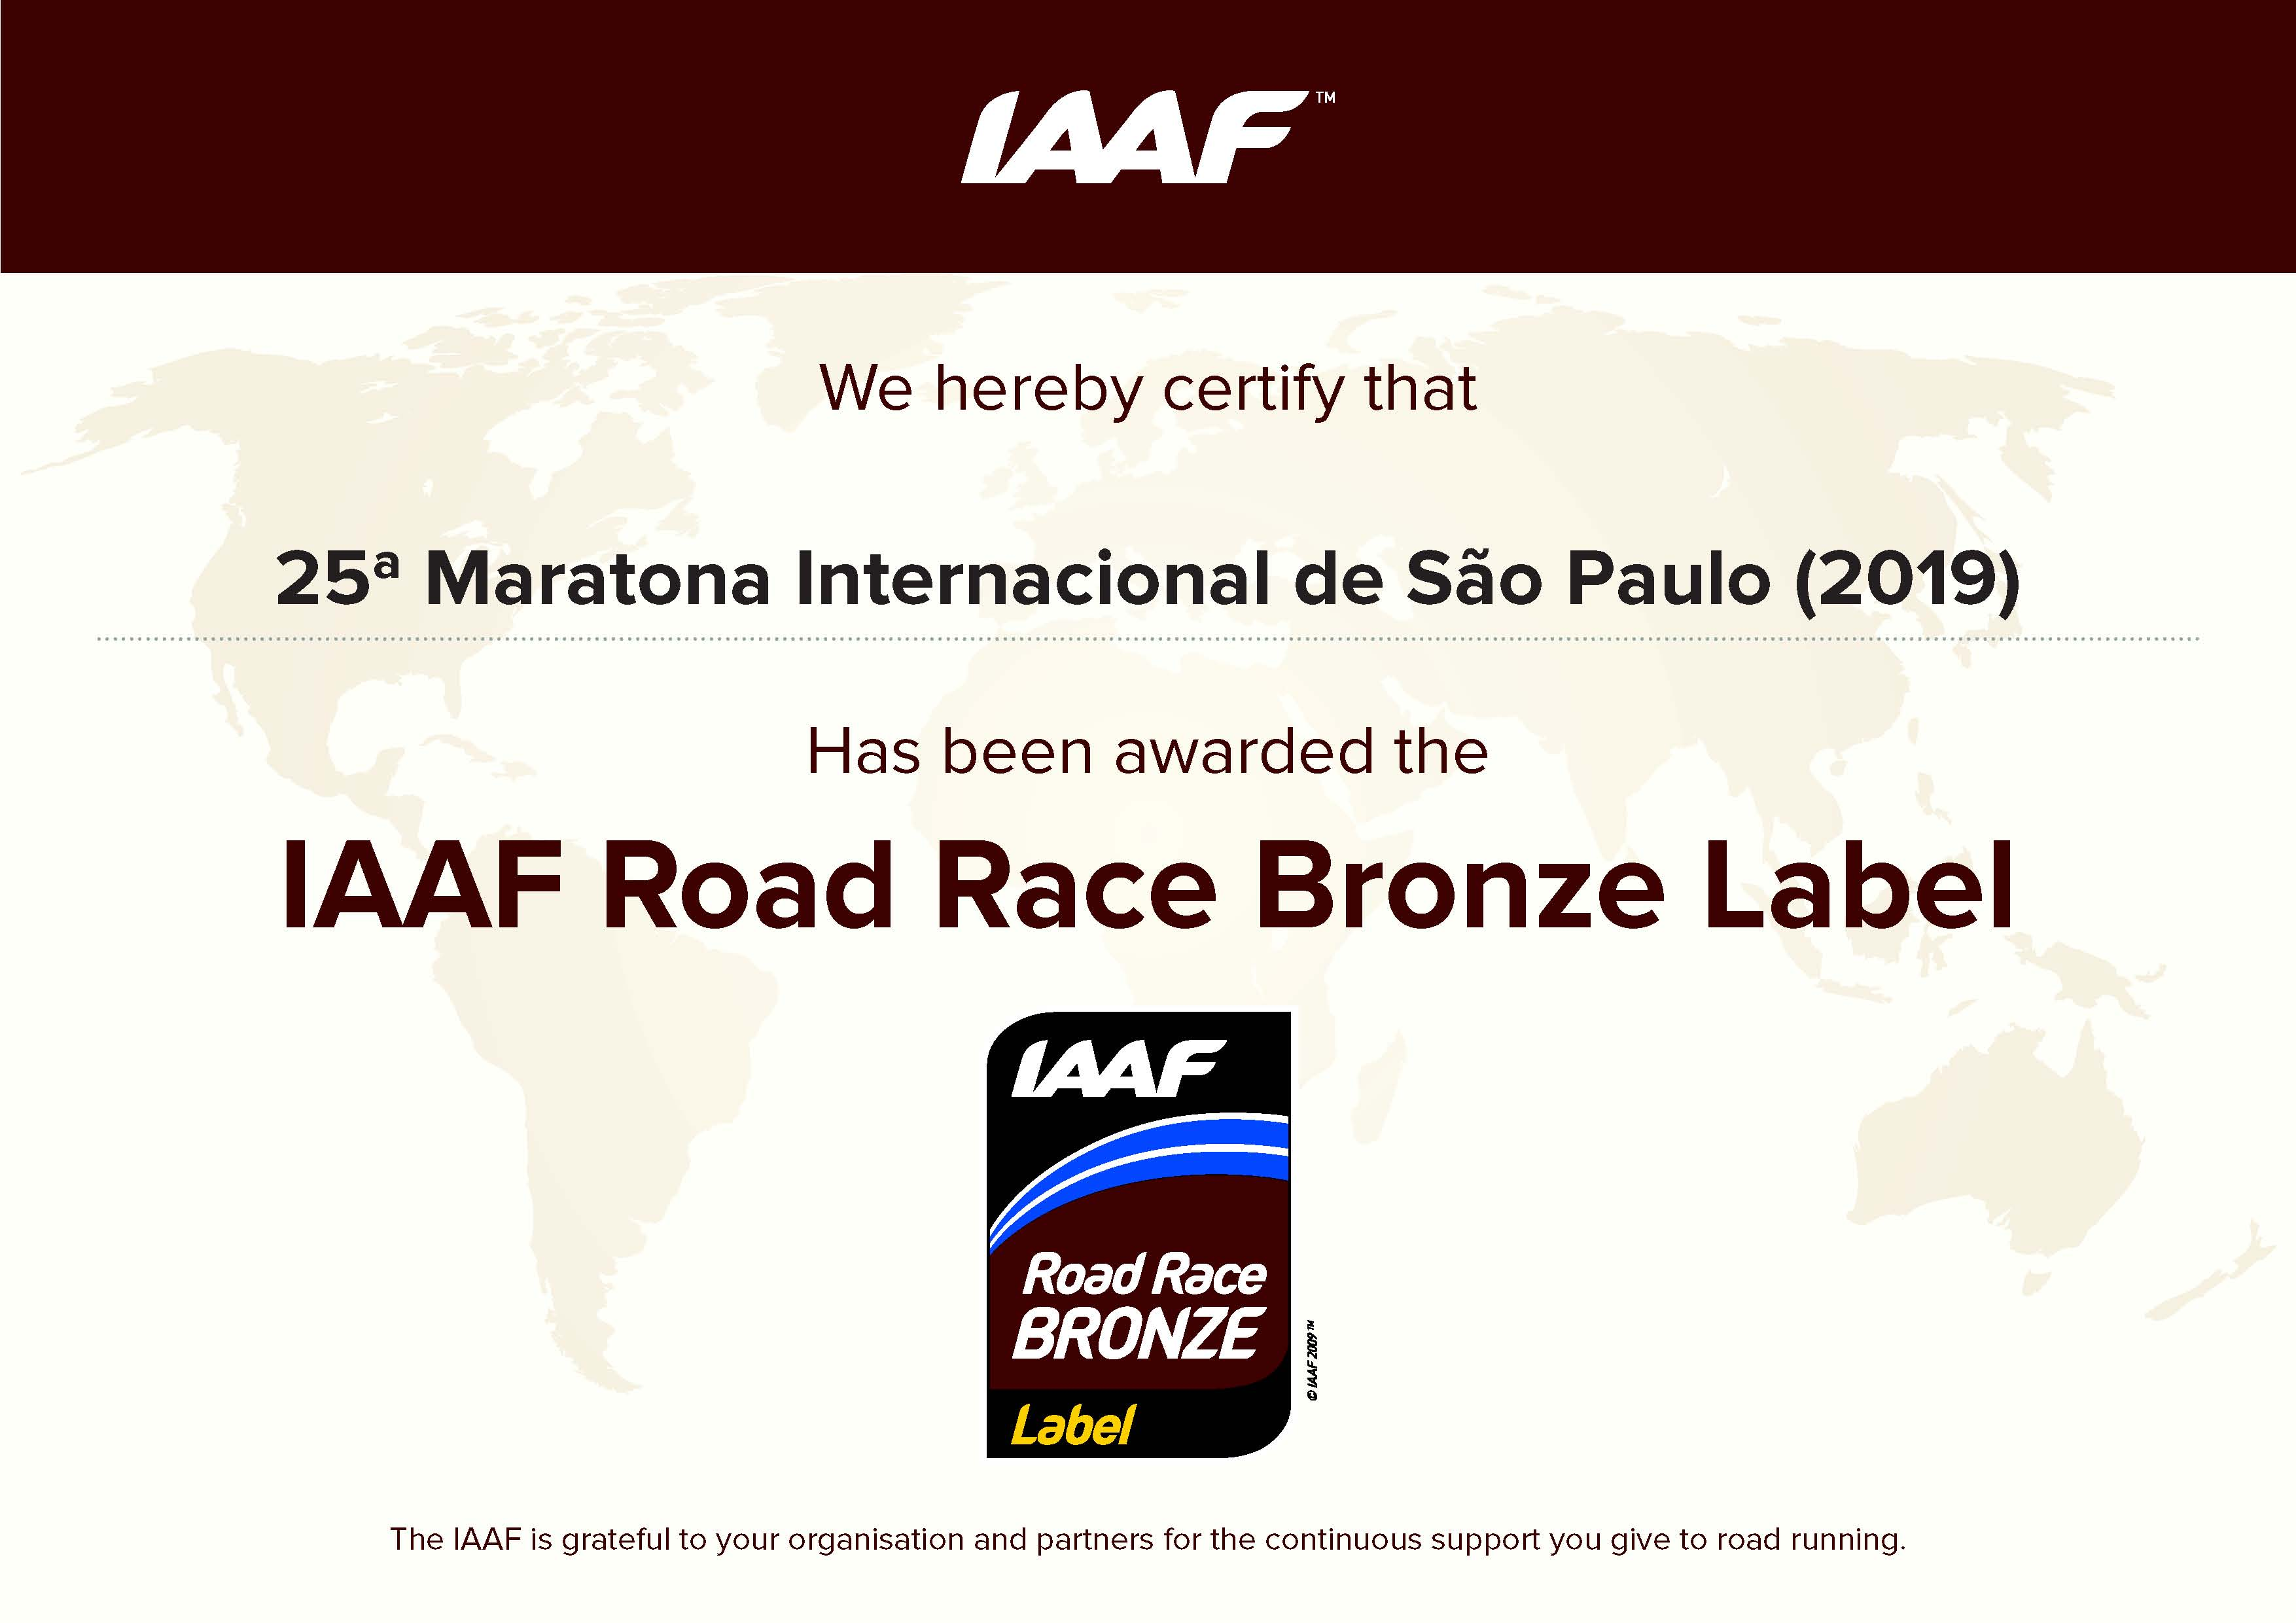 Brazil receives 1st IAAF Bronze Test and 2019 São Paulo Marathon raises its status